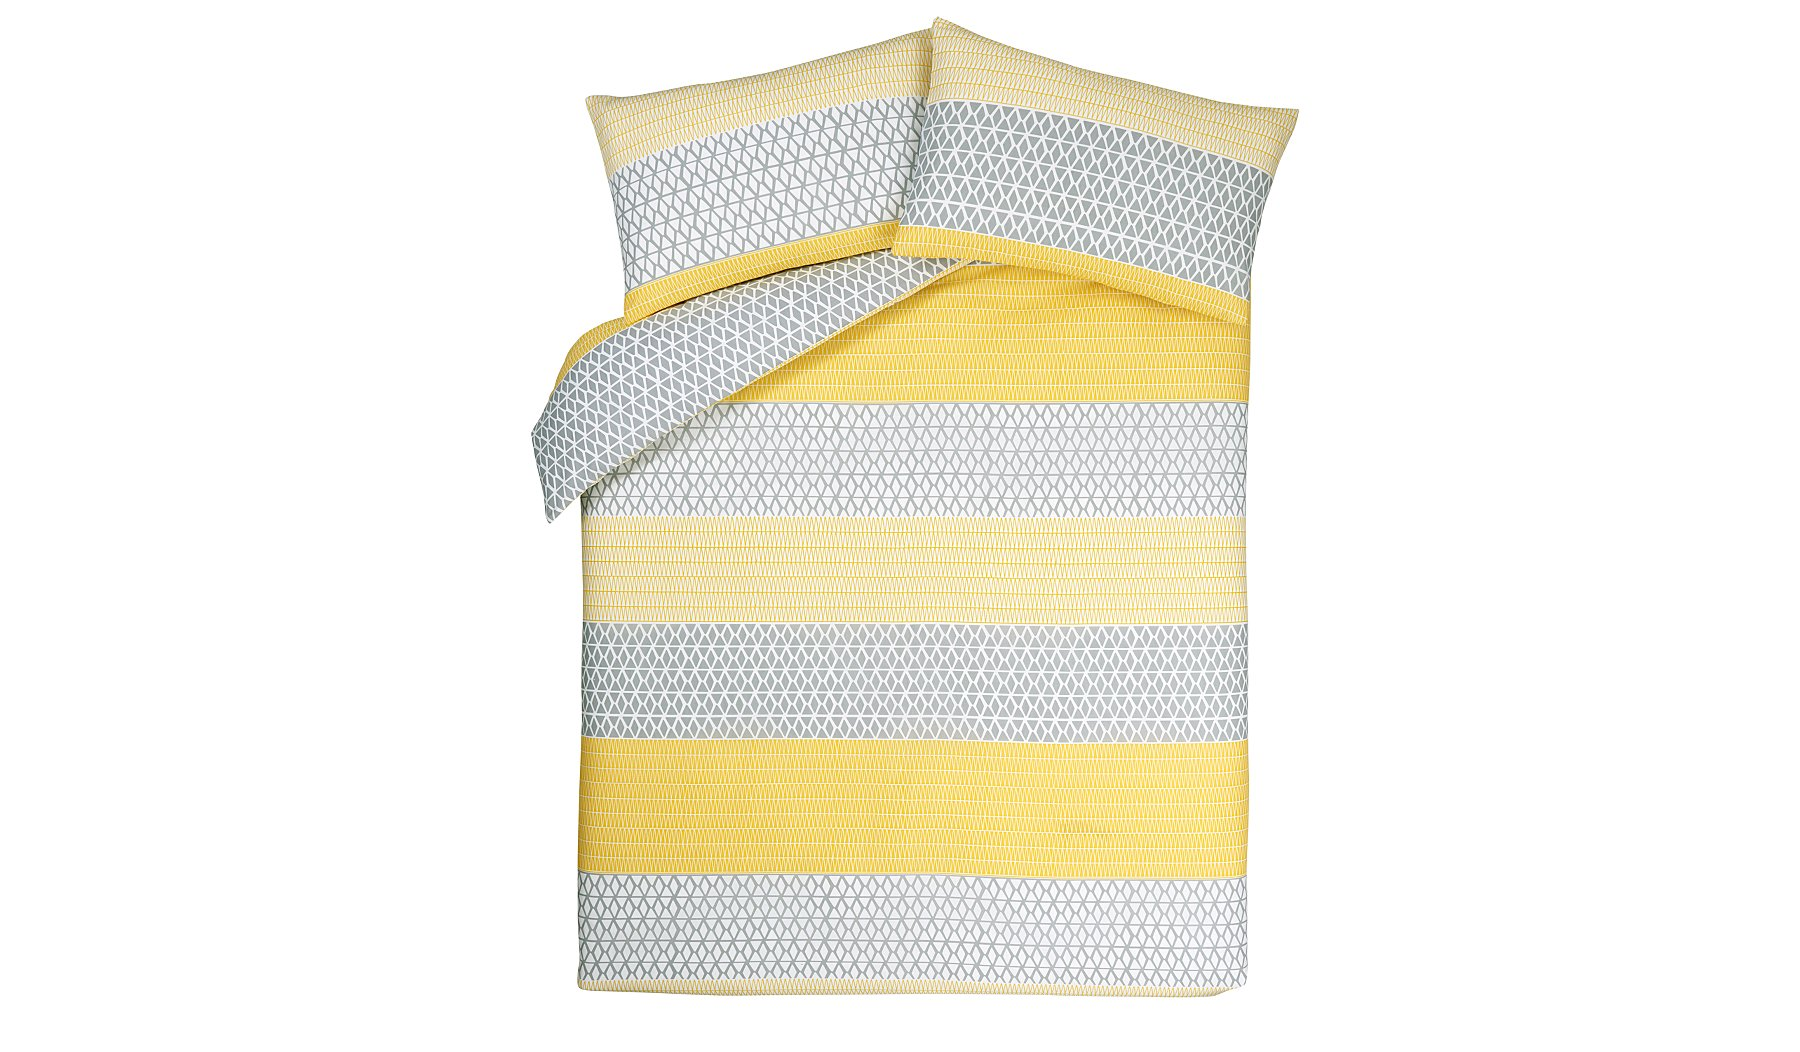 com in bag yellow coordinated mainstays ip a bedding set gray and bed walmart damask